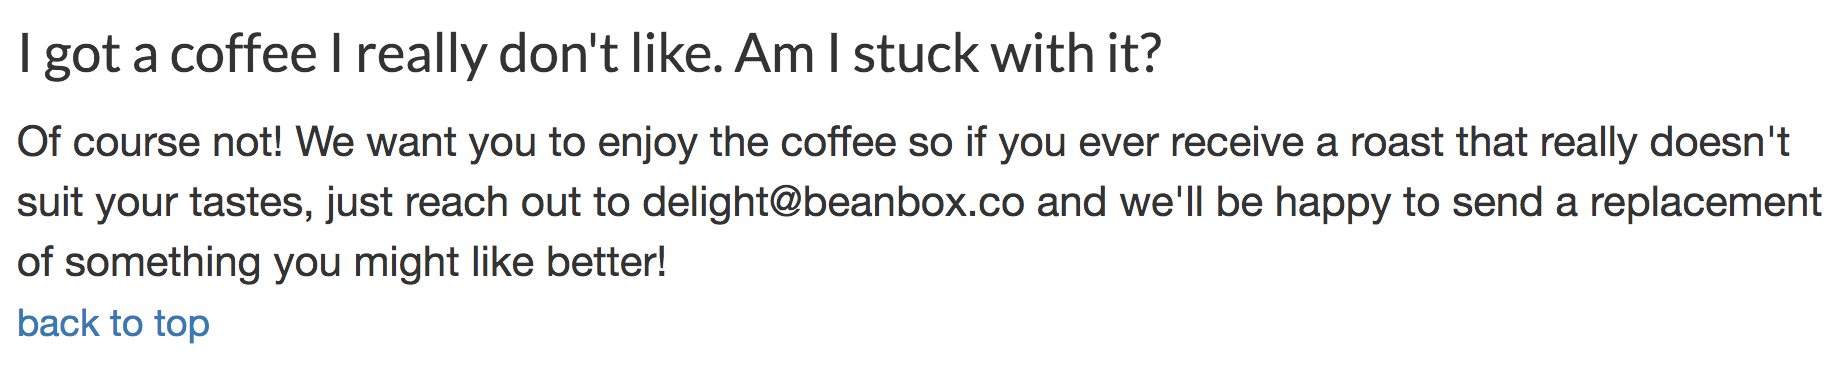 Bean Box Return Policy Example